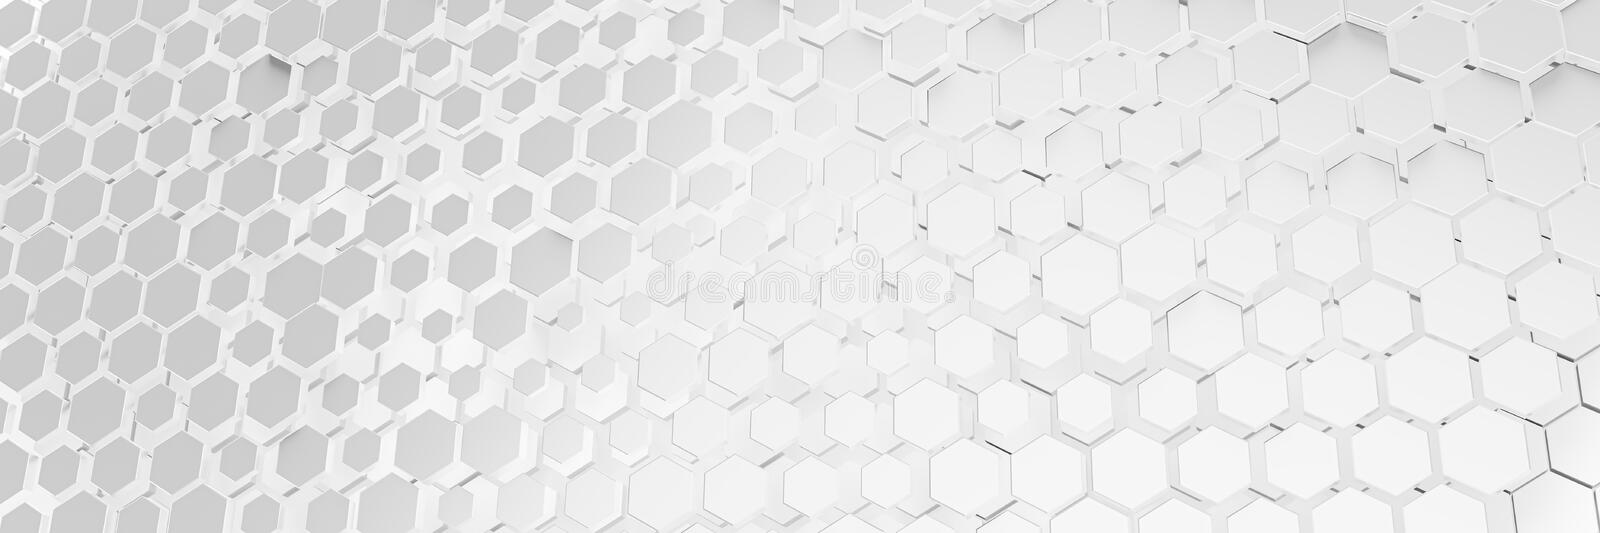 White hexagon background. 3d illustration of a white hexagon background royalty free illustration